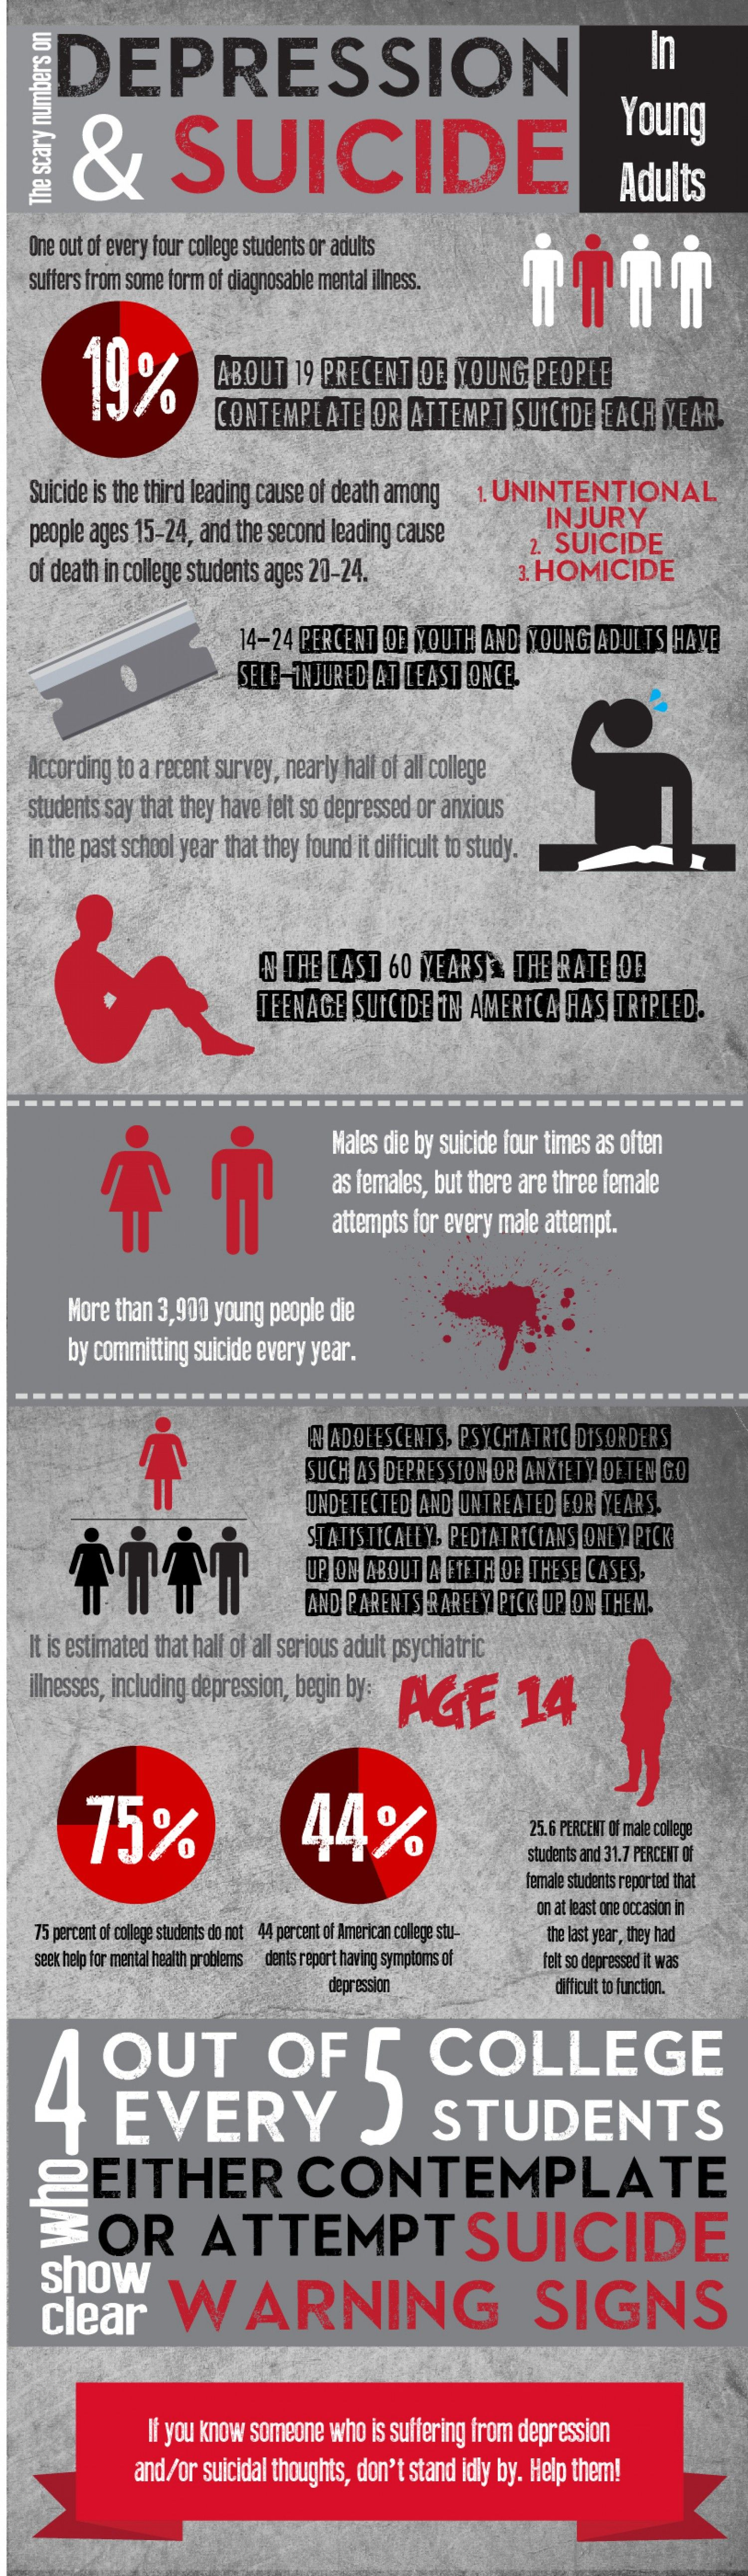 Depression And Suicide In Young Adults Infographic Mentalhealth Mental Health